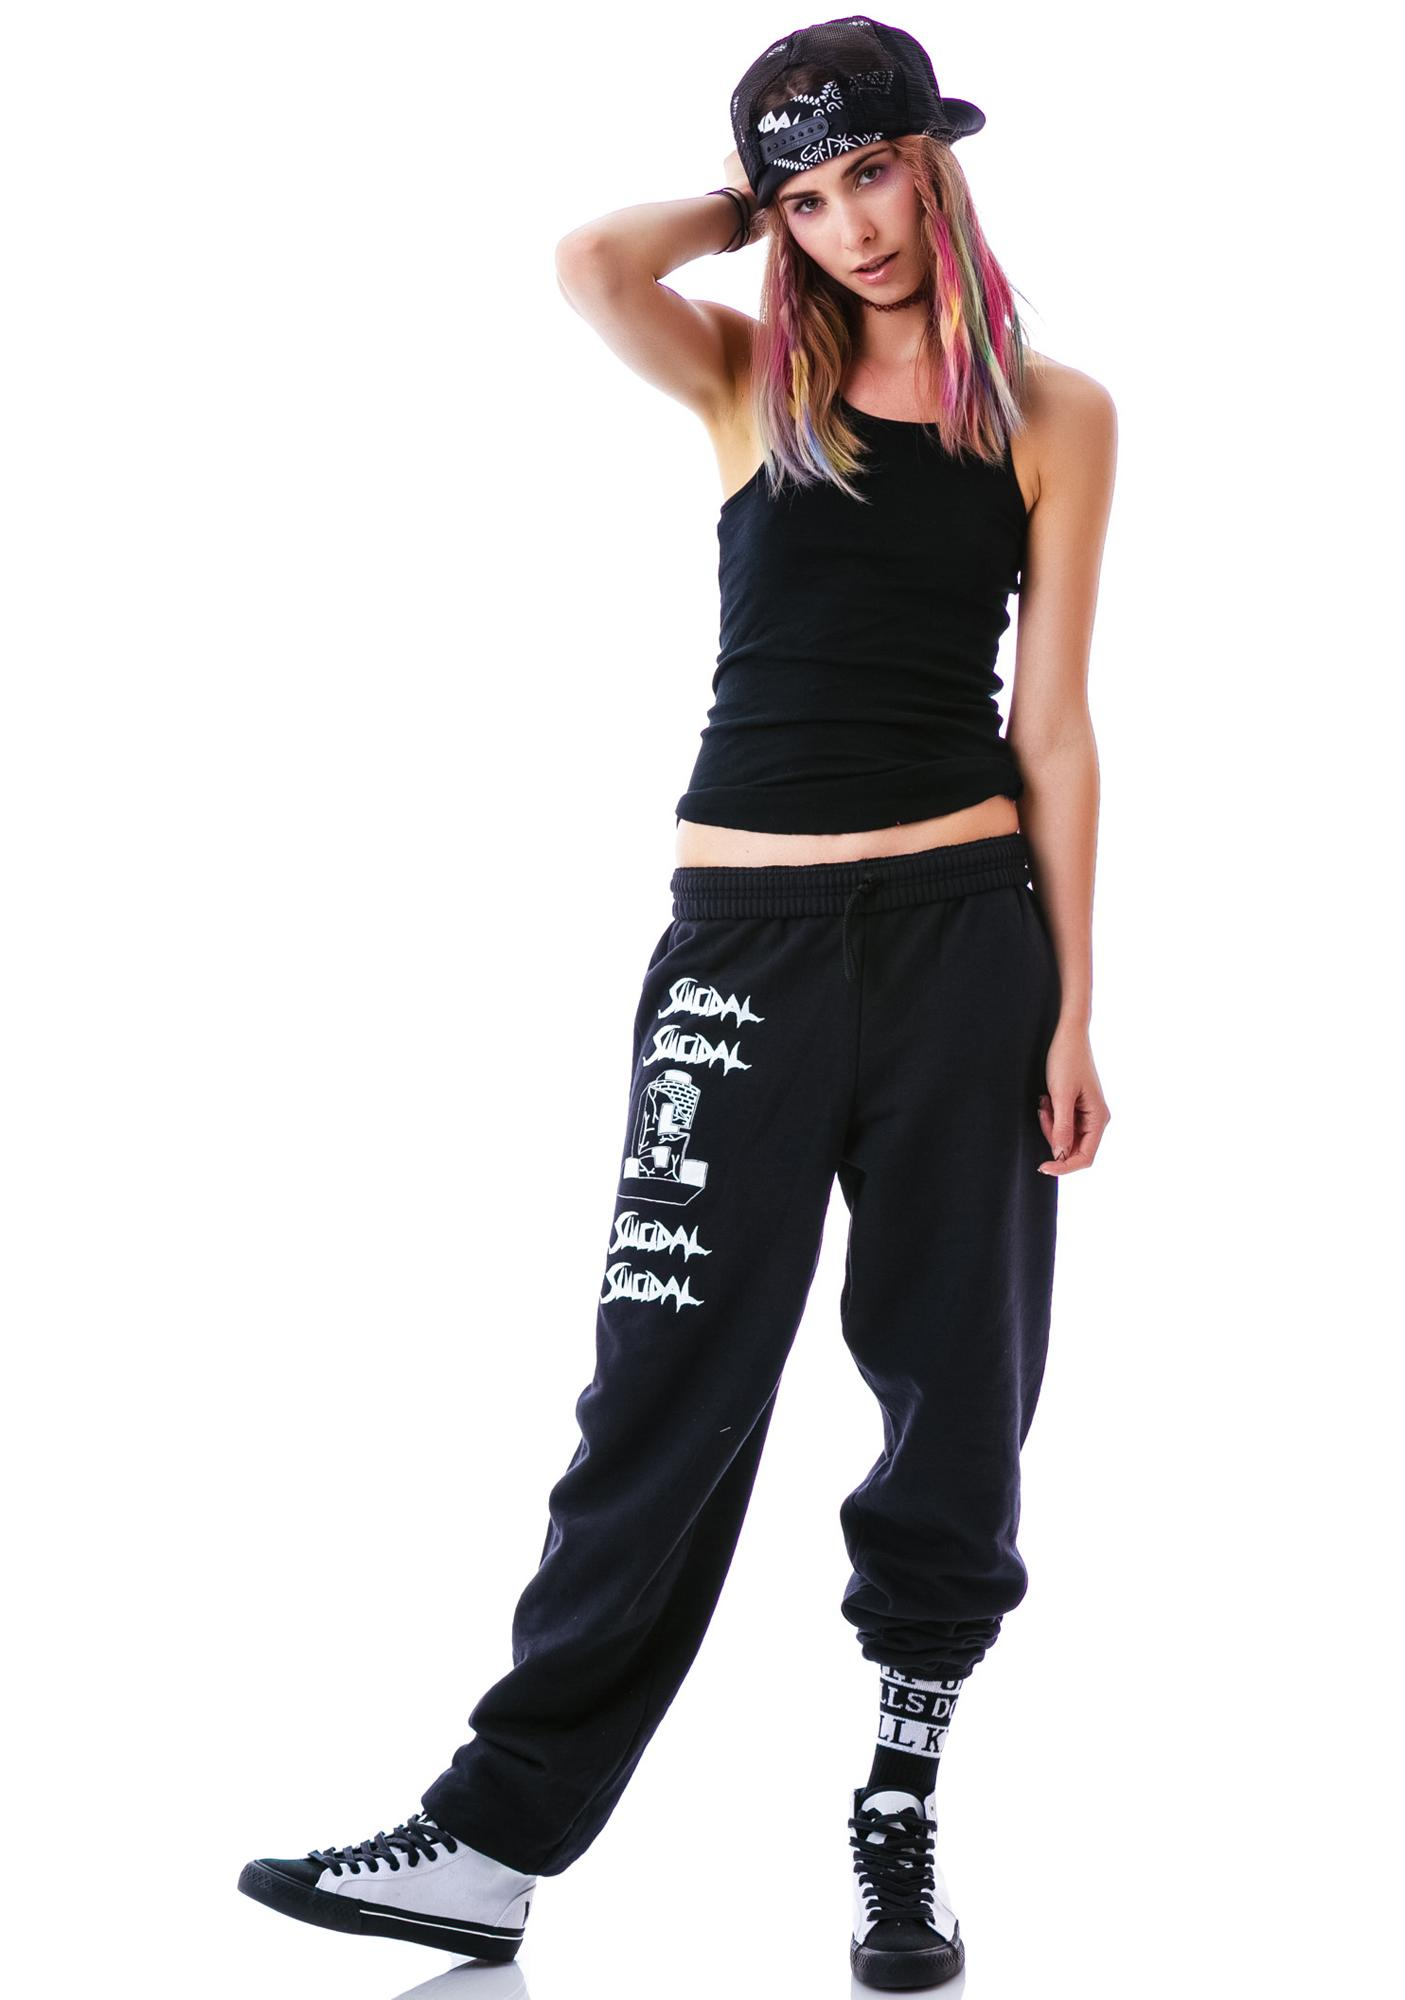 Suicidal Tendencies Suicide Sweatpants